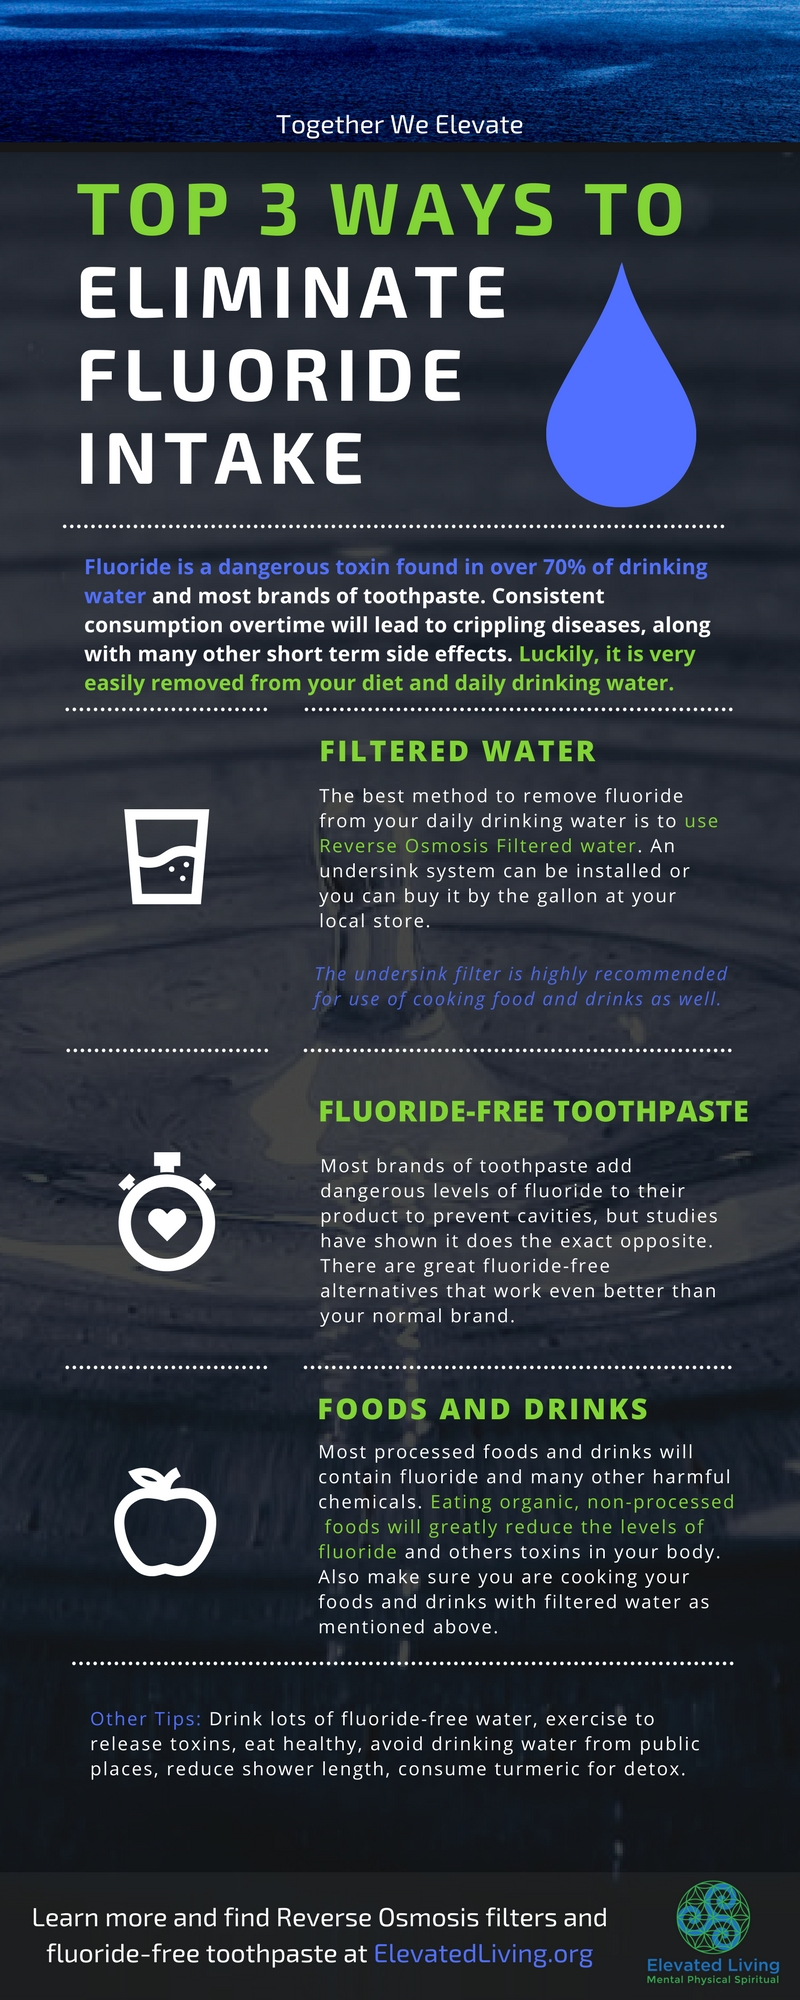 eliminate fluoride water and toothpaste